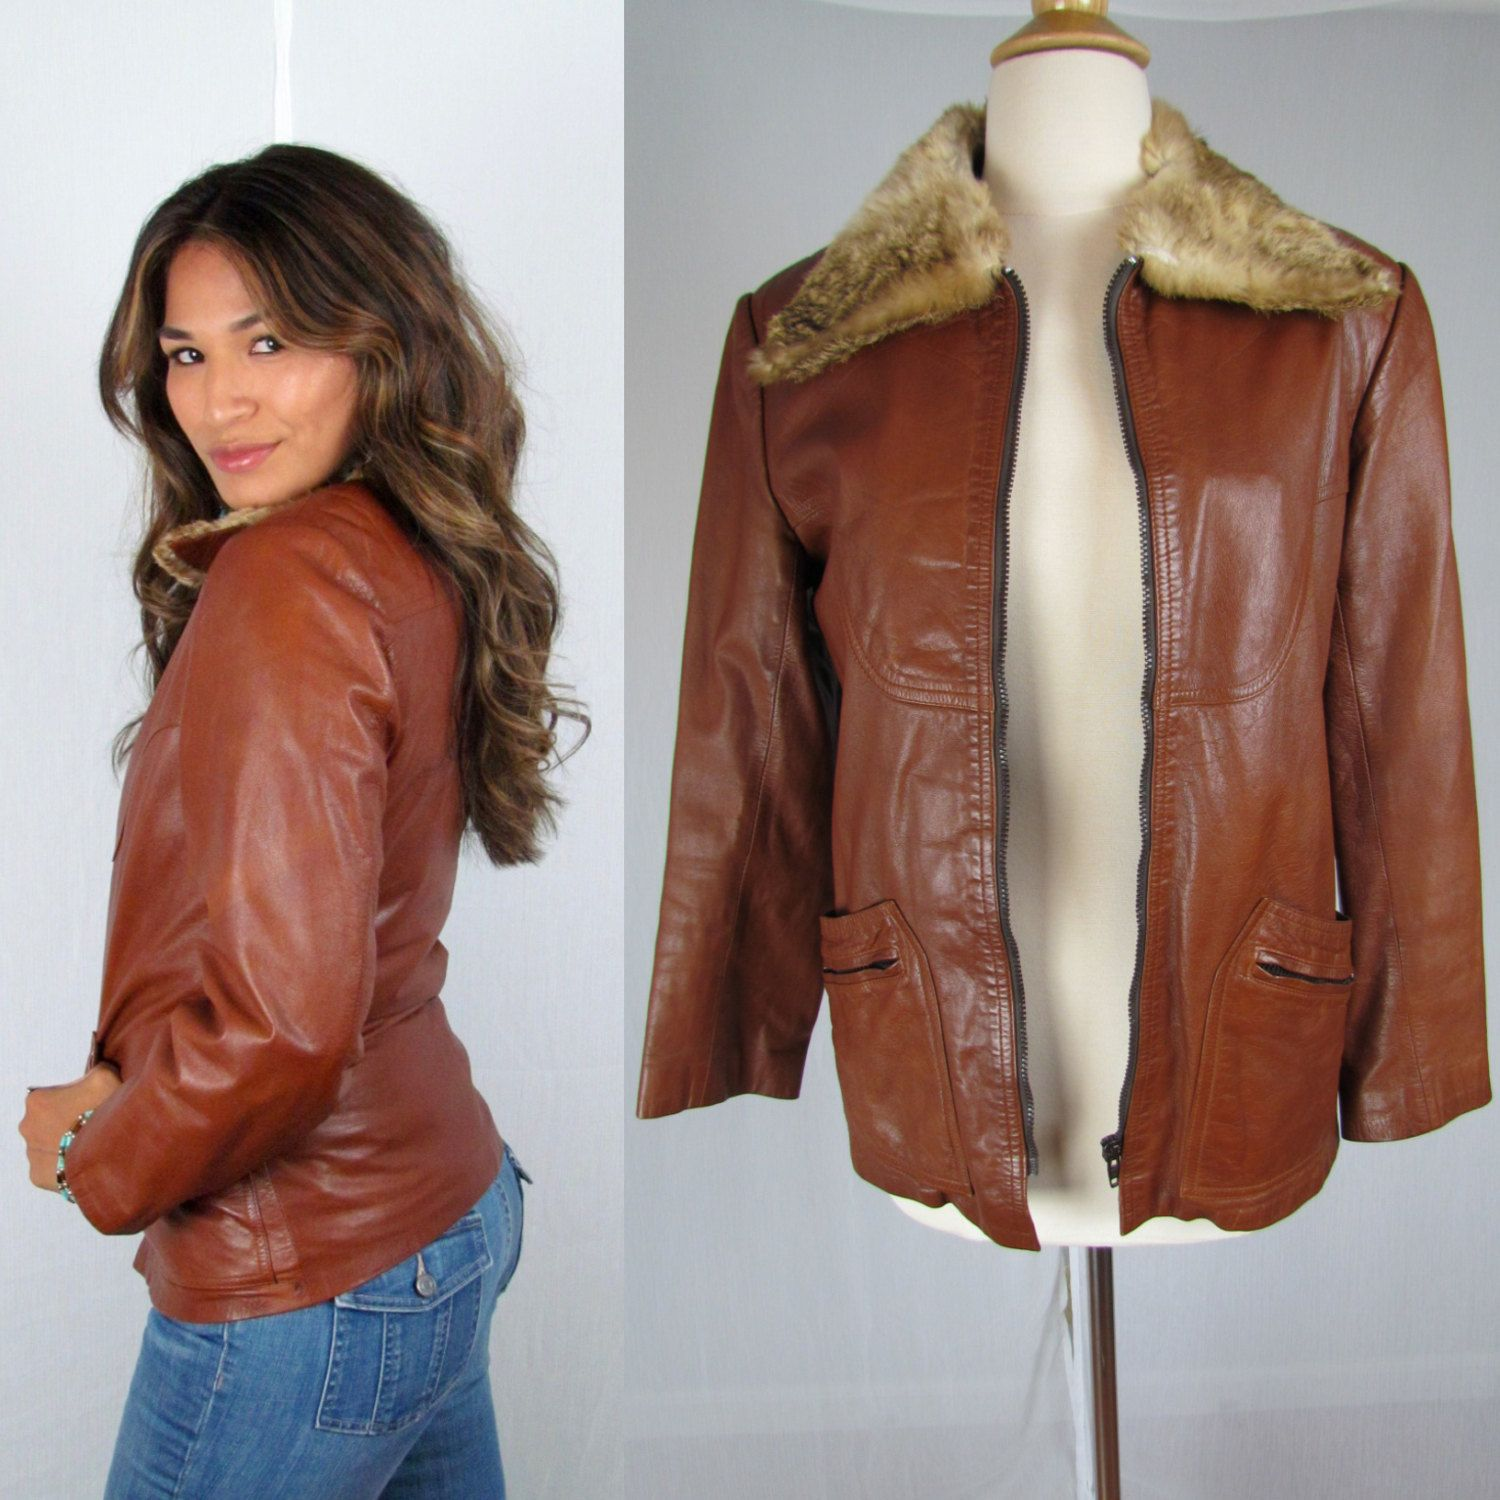 Vintage 70s Brown Leather Jacket With Fur Collar And Zip Off Faux Fur Lining By Whitefoxvintageco On Etsy Leather Jacket Fur Leather Jacket Vintage Outfits [ 1500 x 1500 Pixel ]